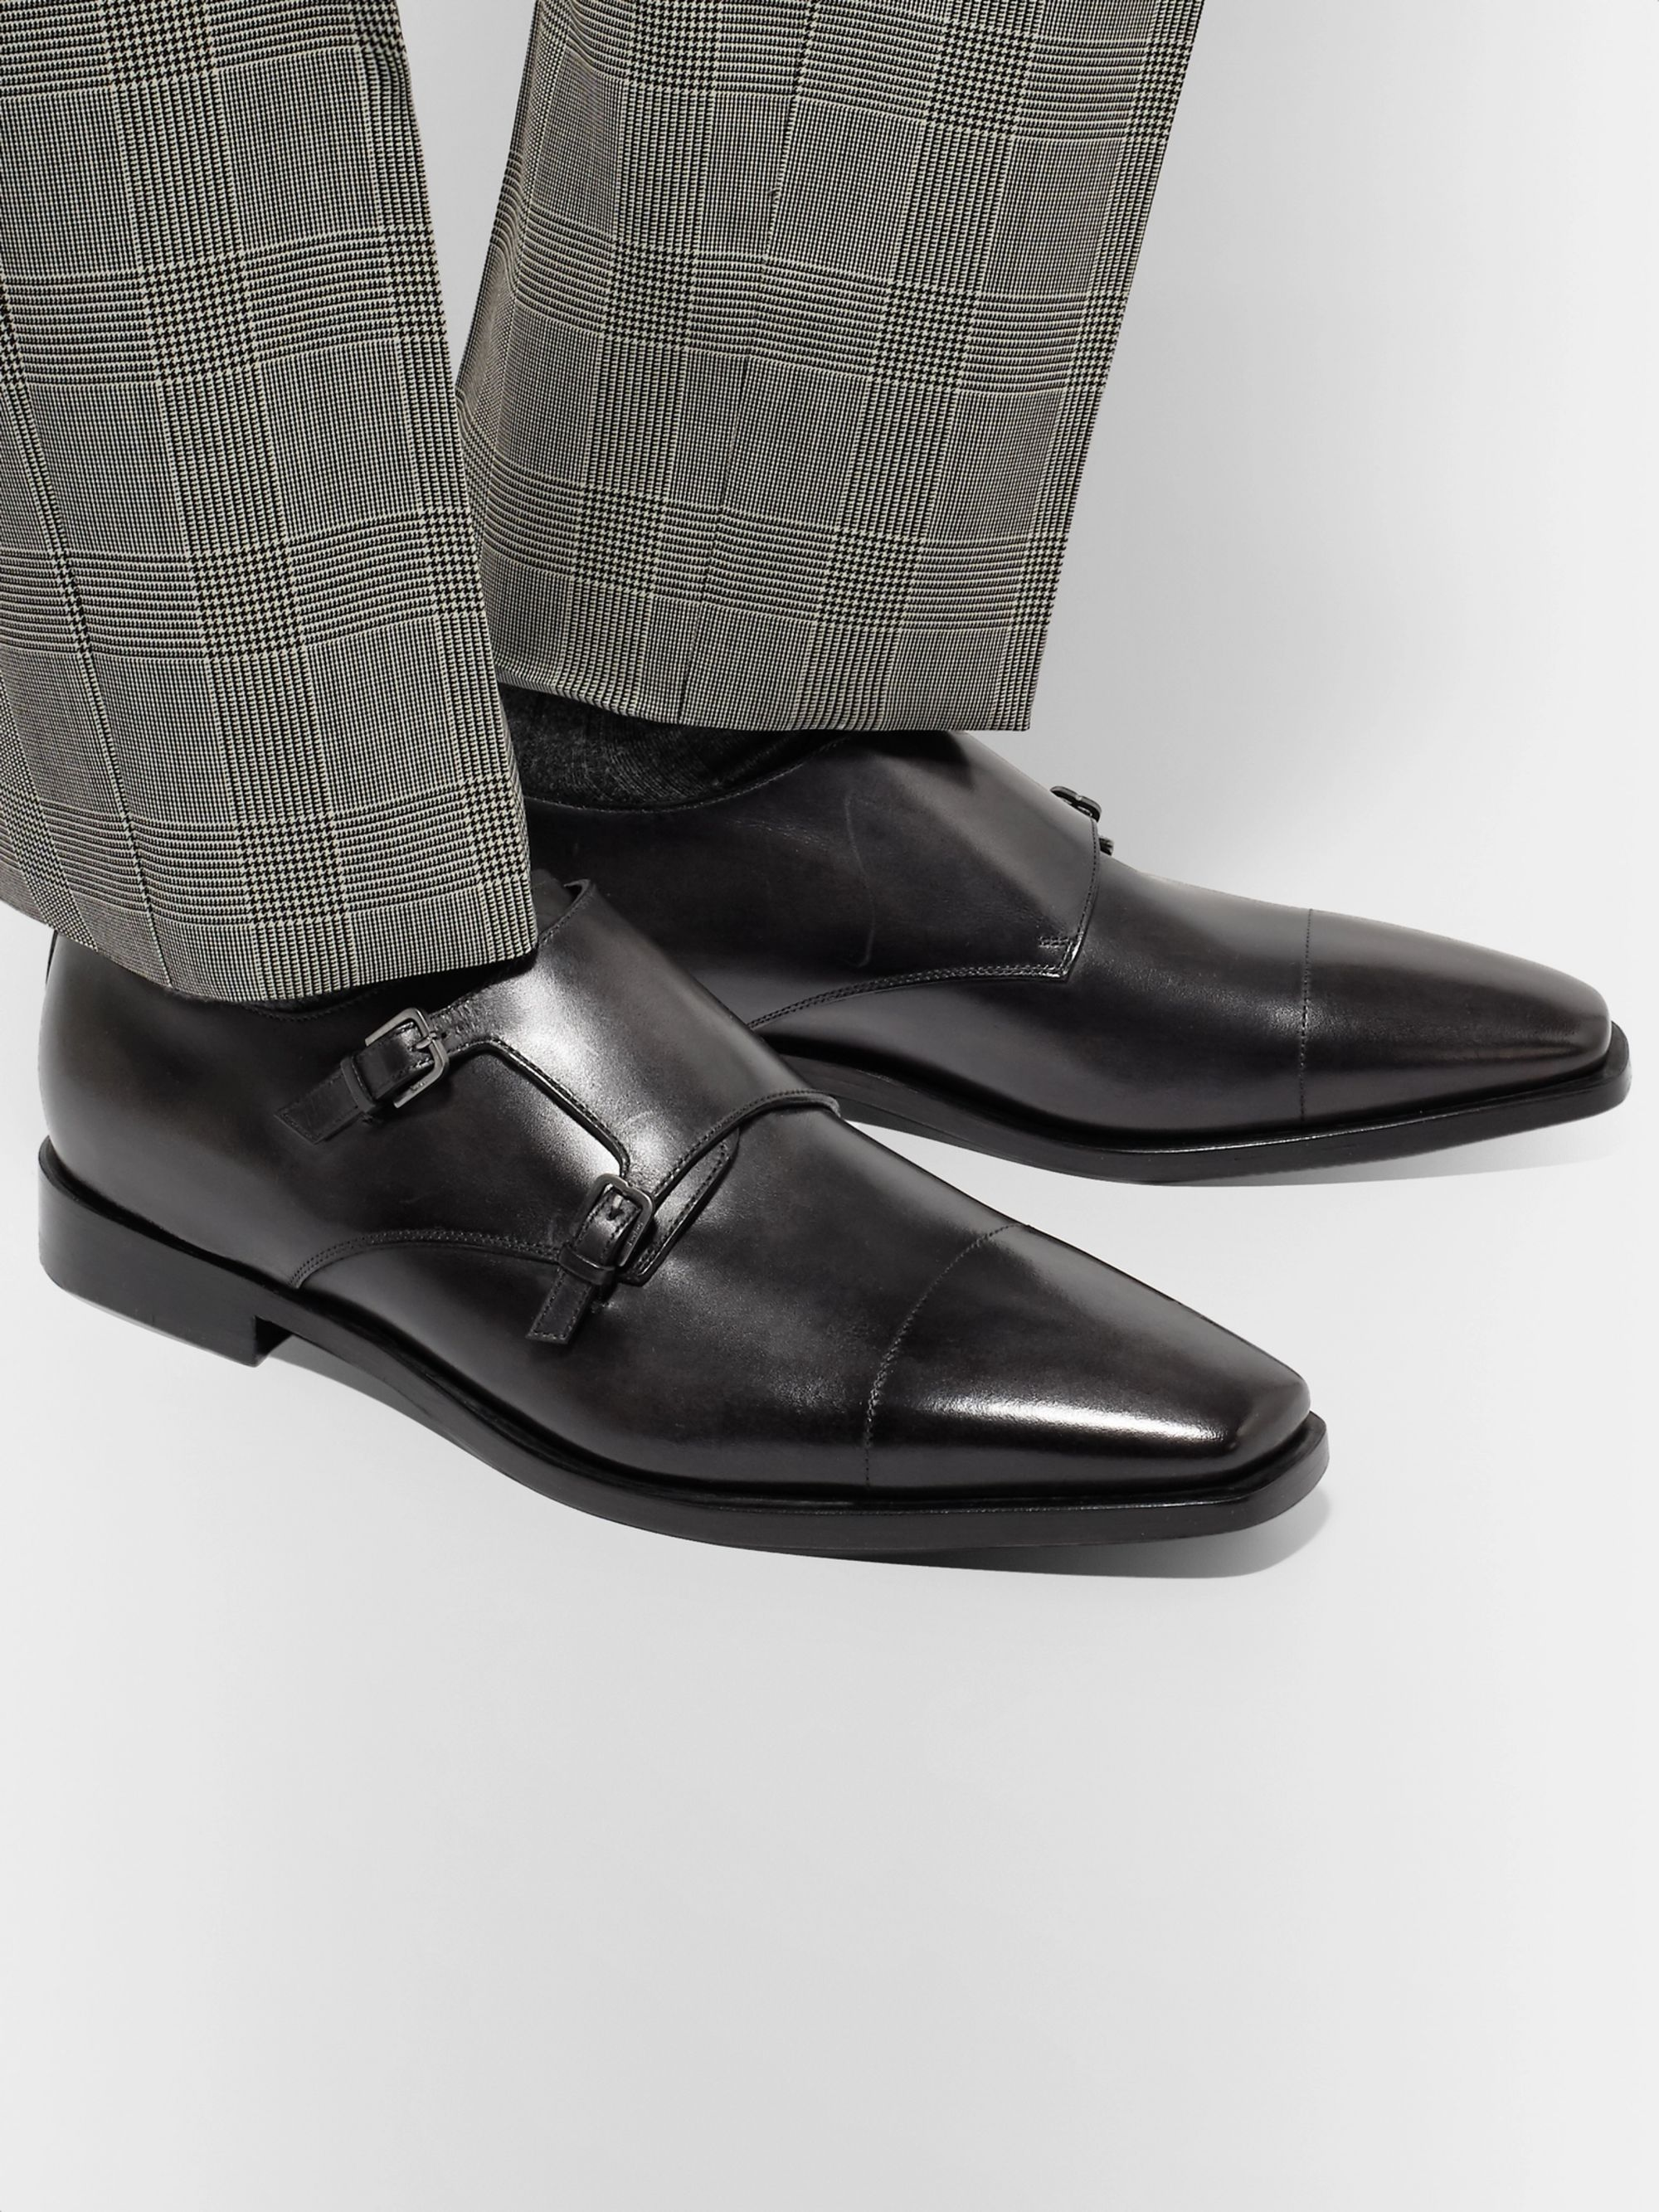 Berluti Cap-Toe Polished-Leather Monk-Strap Shoes